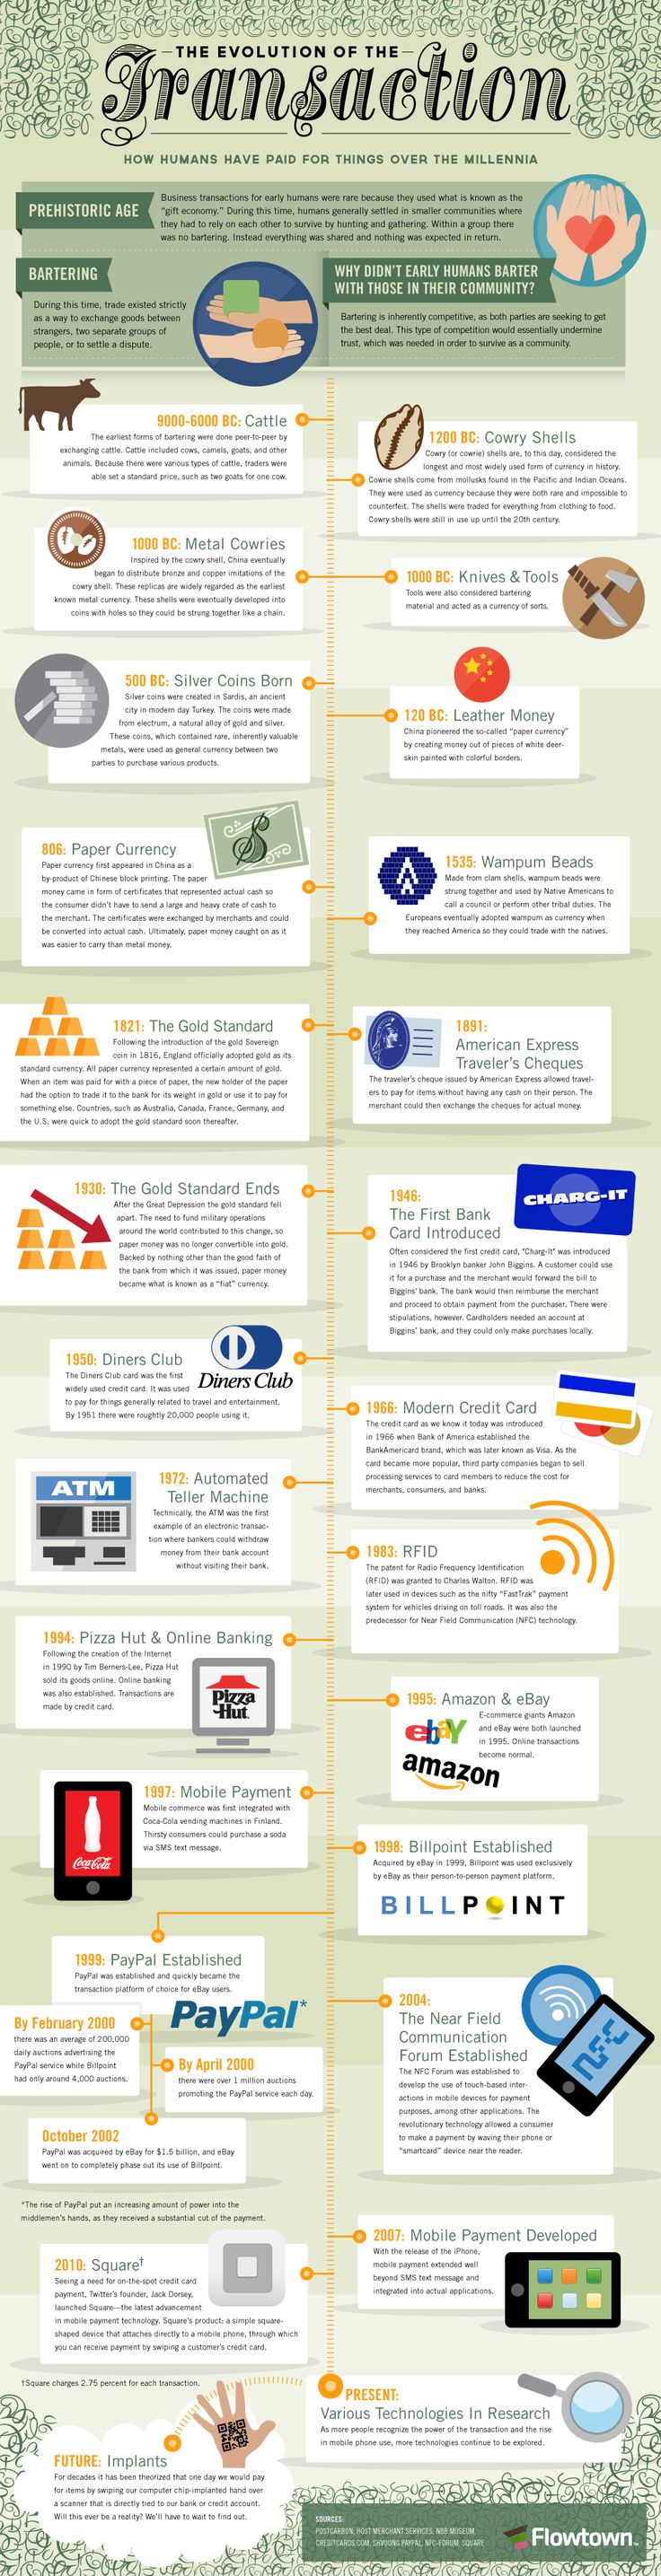 The Evolution of the Transaction. How humans have paid for things over the millennia. #infographic